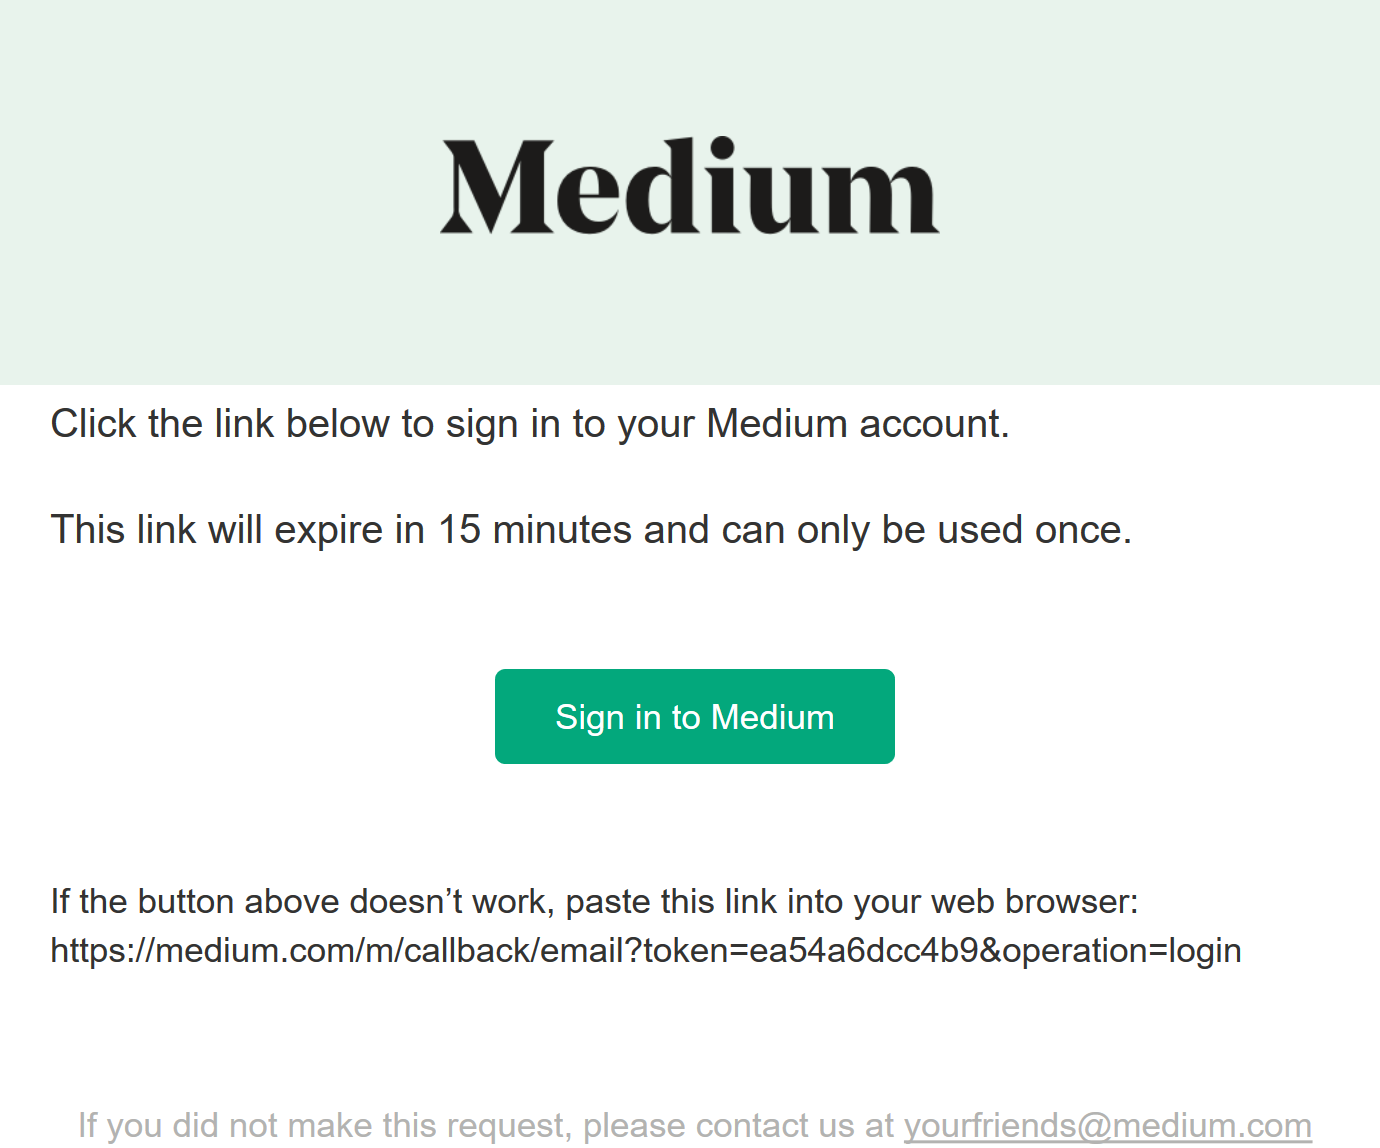 Implementing Medium's Passwordless Authentication using ASP